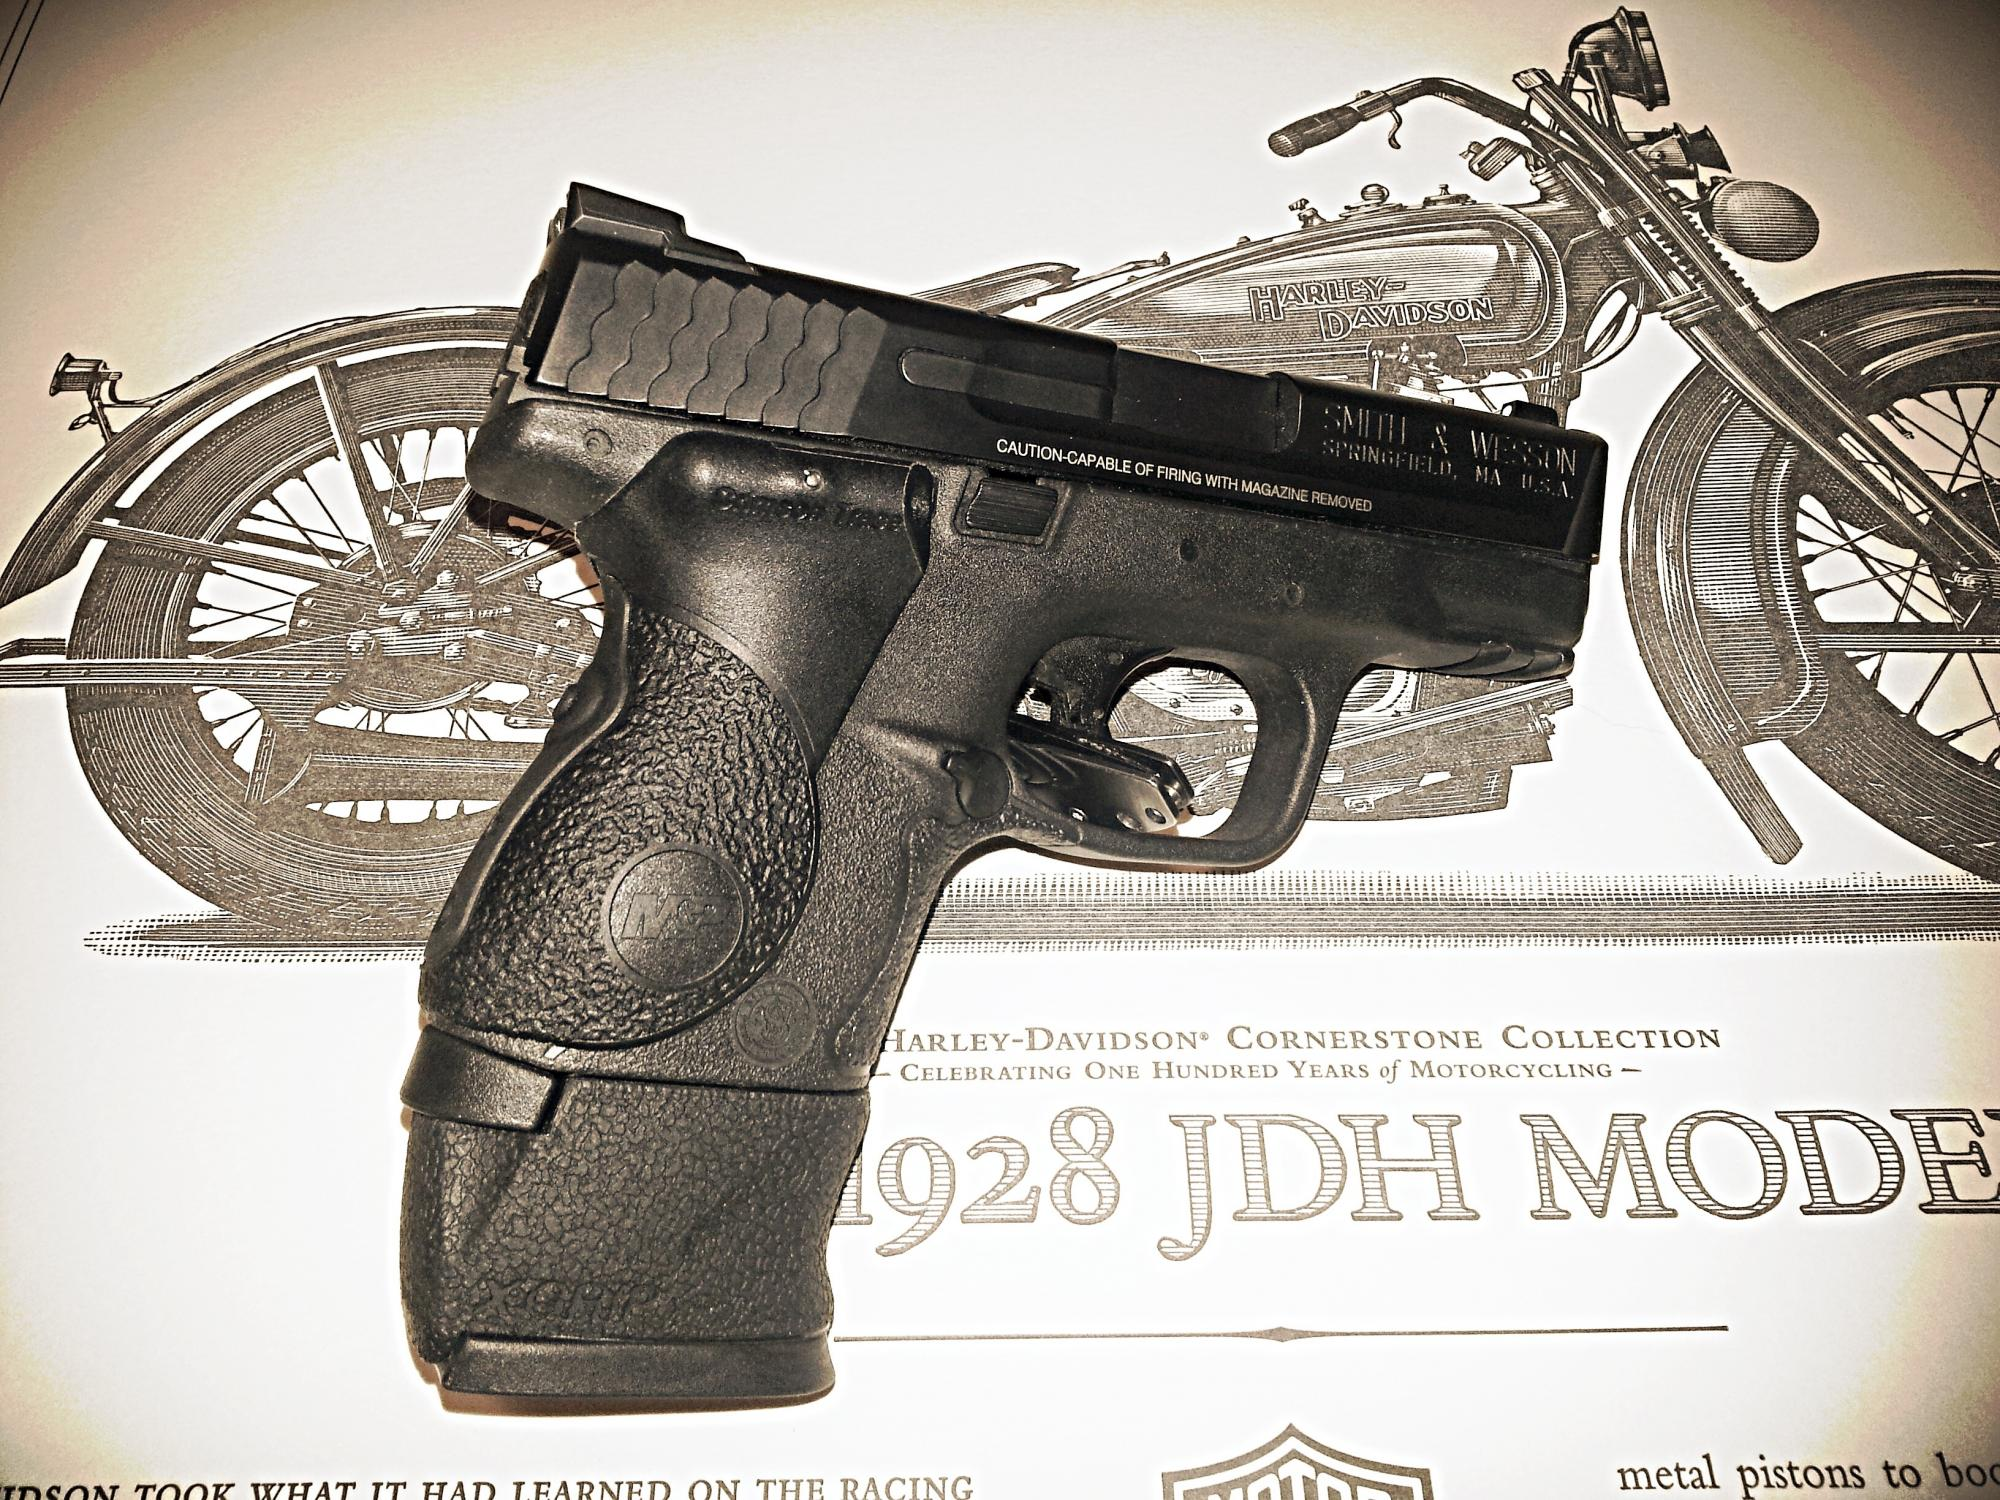 Official m&p picture thread!